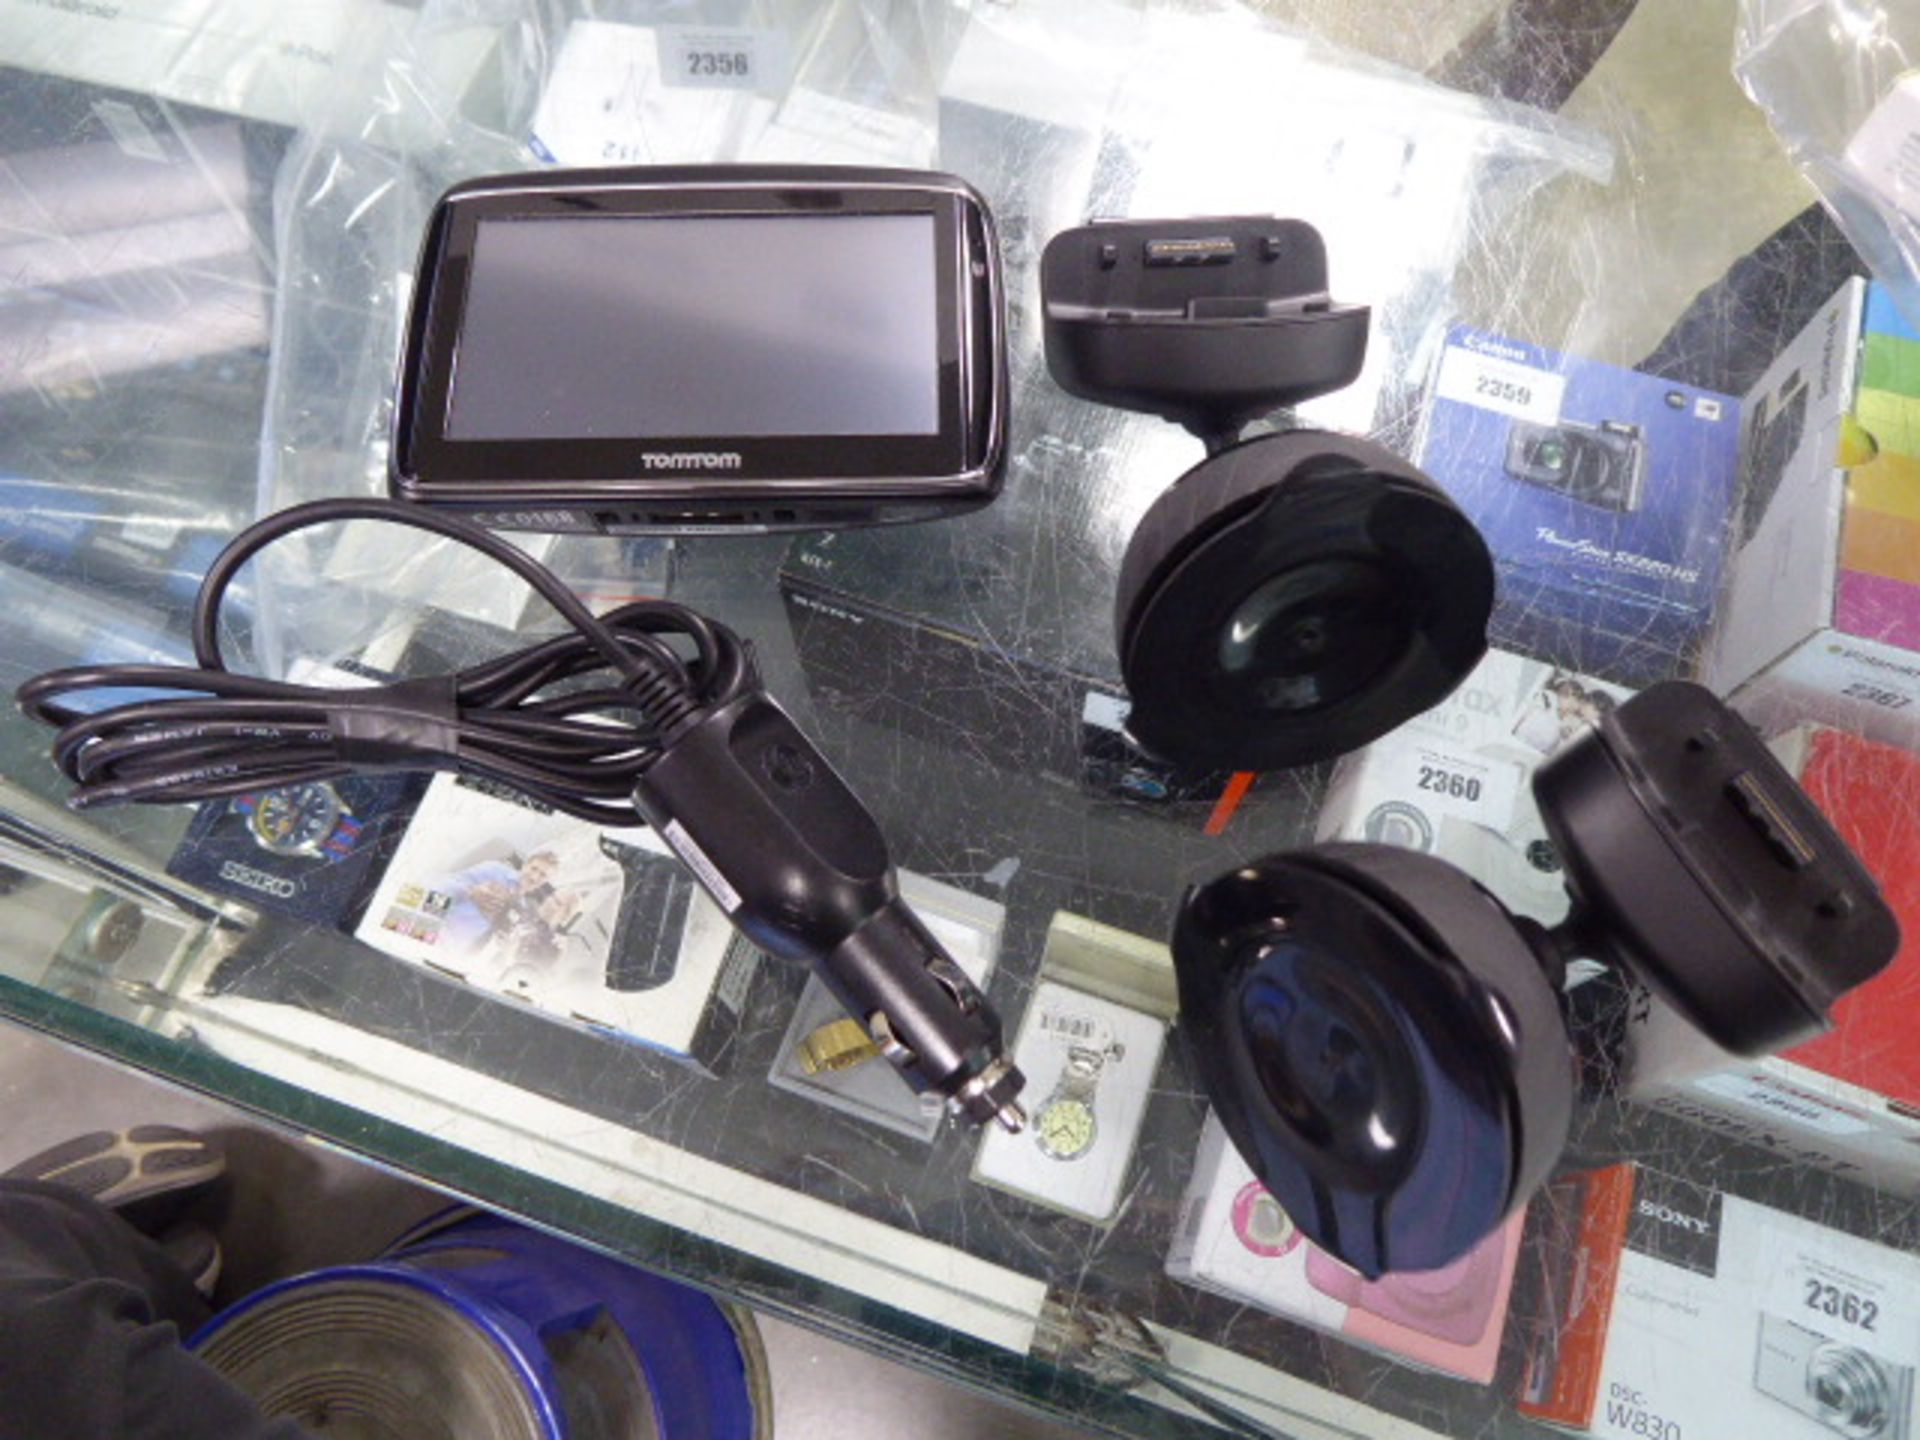 Lot 2390 - TomTom and other sat-navs in bag with accessories